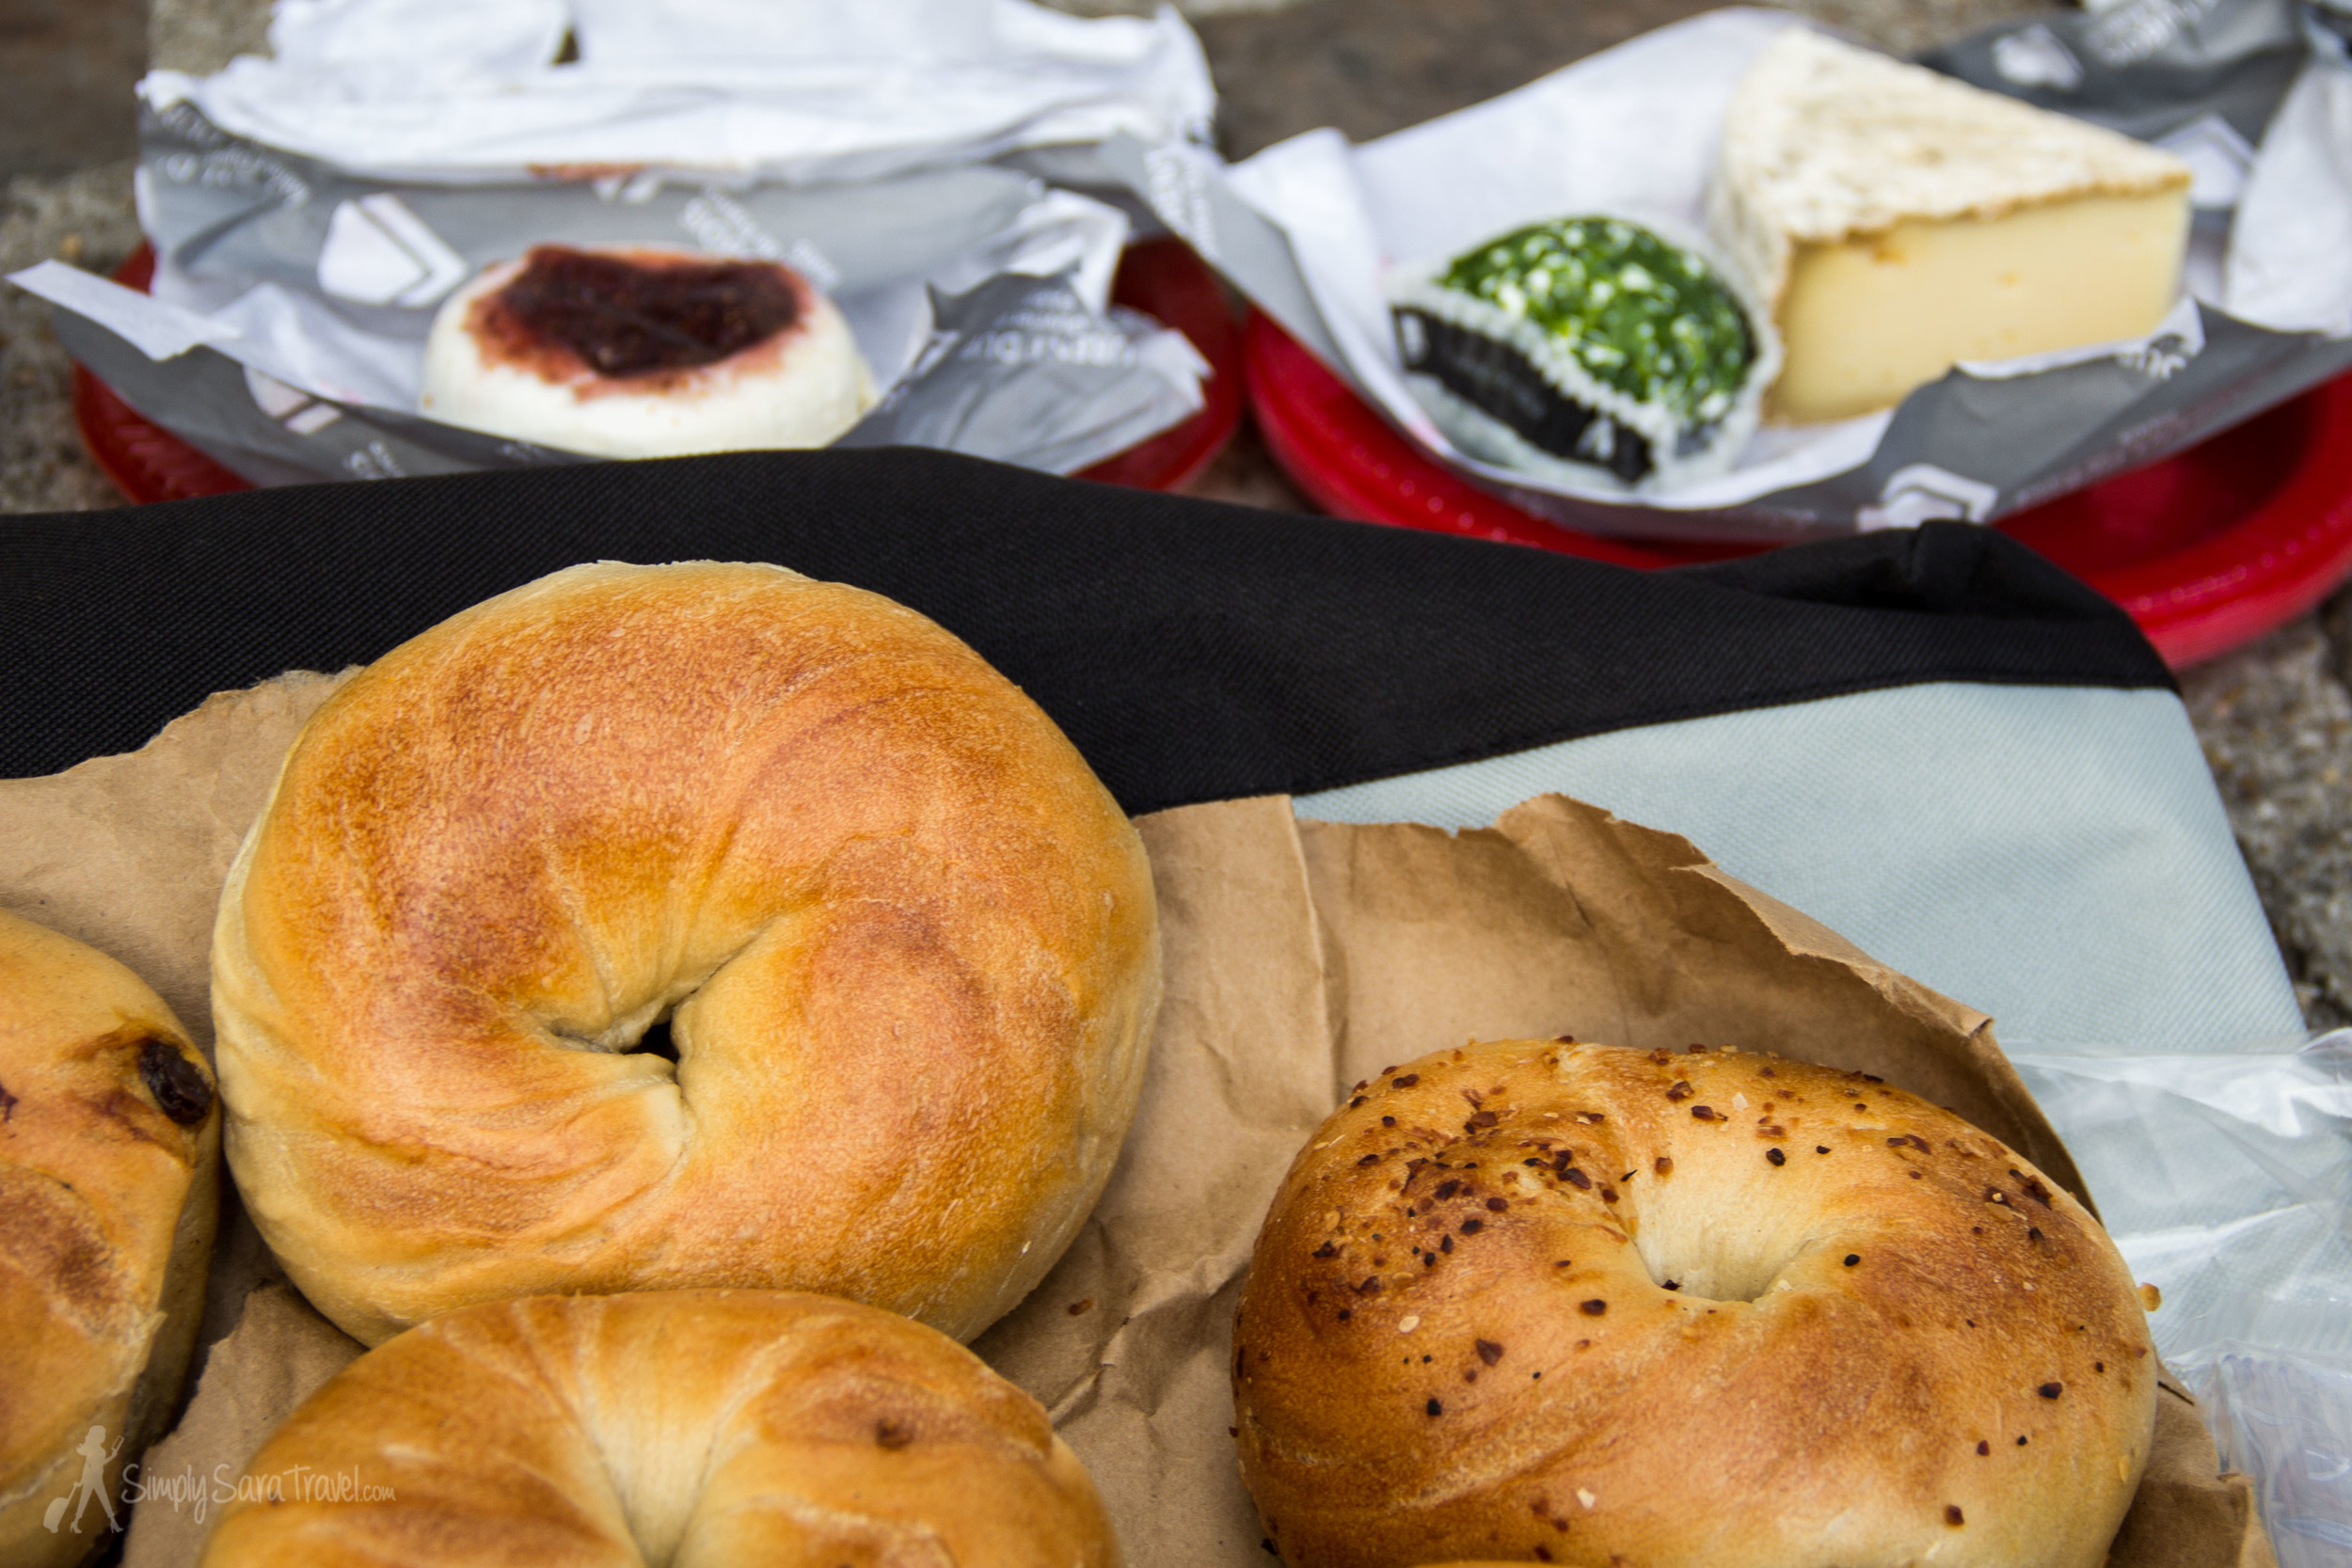 We brought some fresh New York bagels with us, and had a bagel-and-French-cheese pairing at our picnic! [Pro-tip that I learned the hard way - packing onion or everything bagels in your carry-on will REEK! And make your bag linger with an onion/garlic scent for weeks. And repel your fellow plane-mates from you. But is so worth it.]